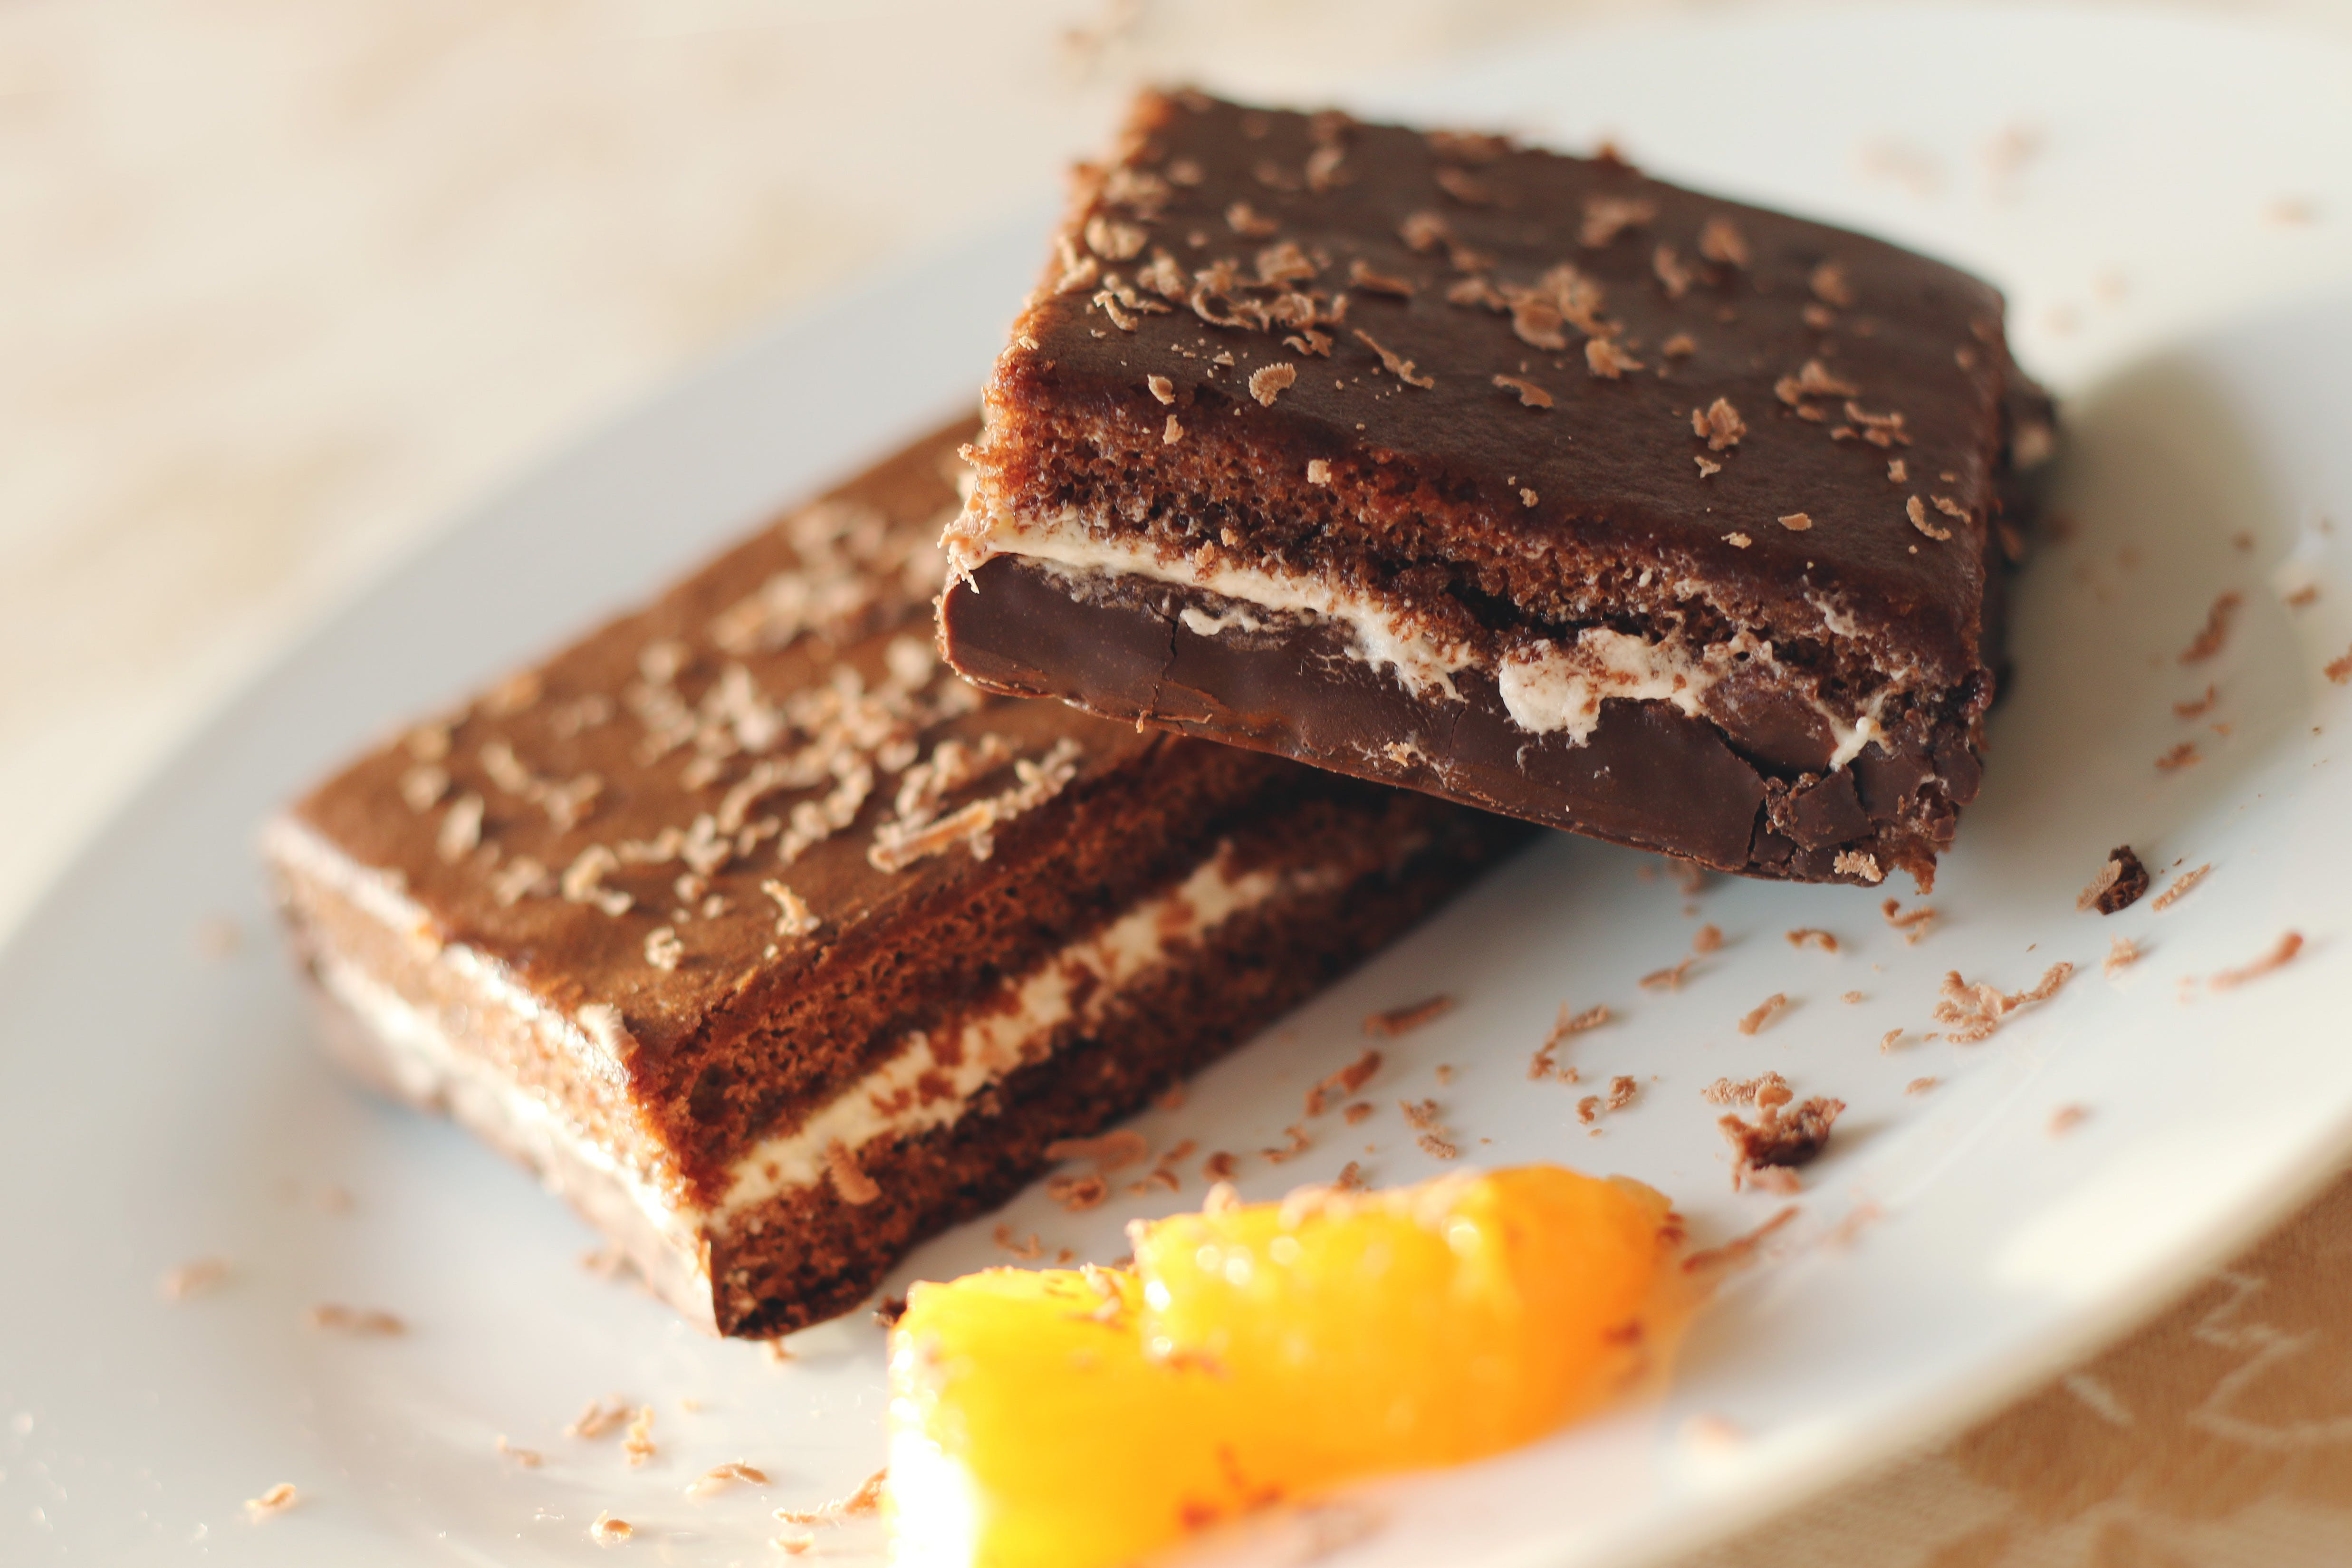 Baked Brownies on Plate